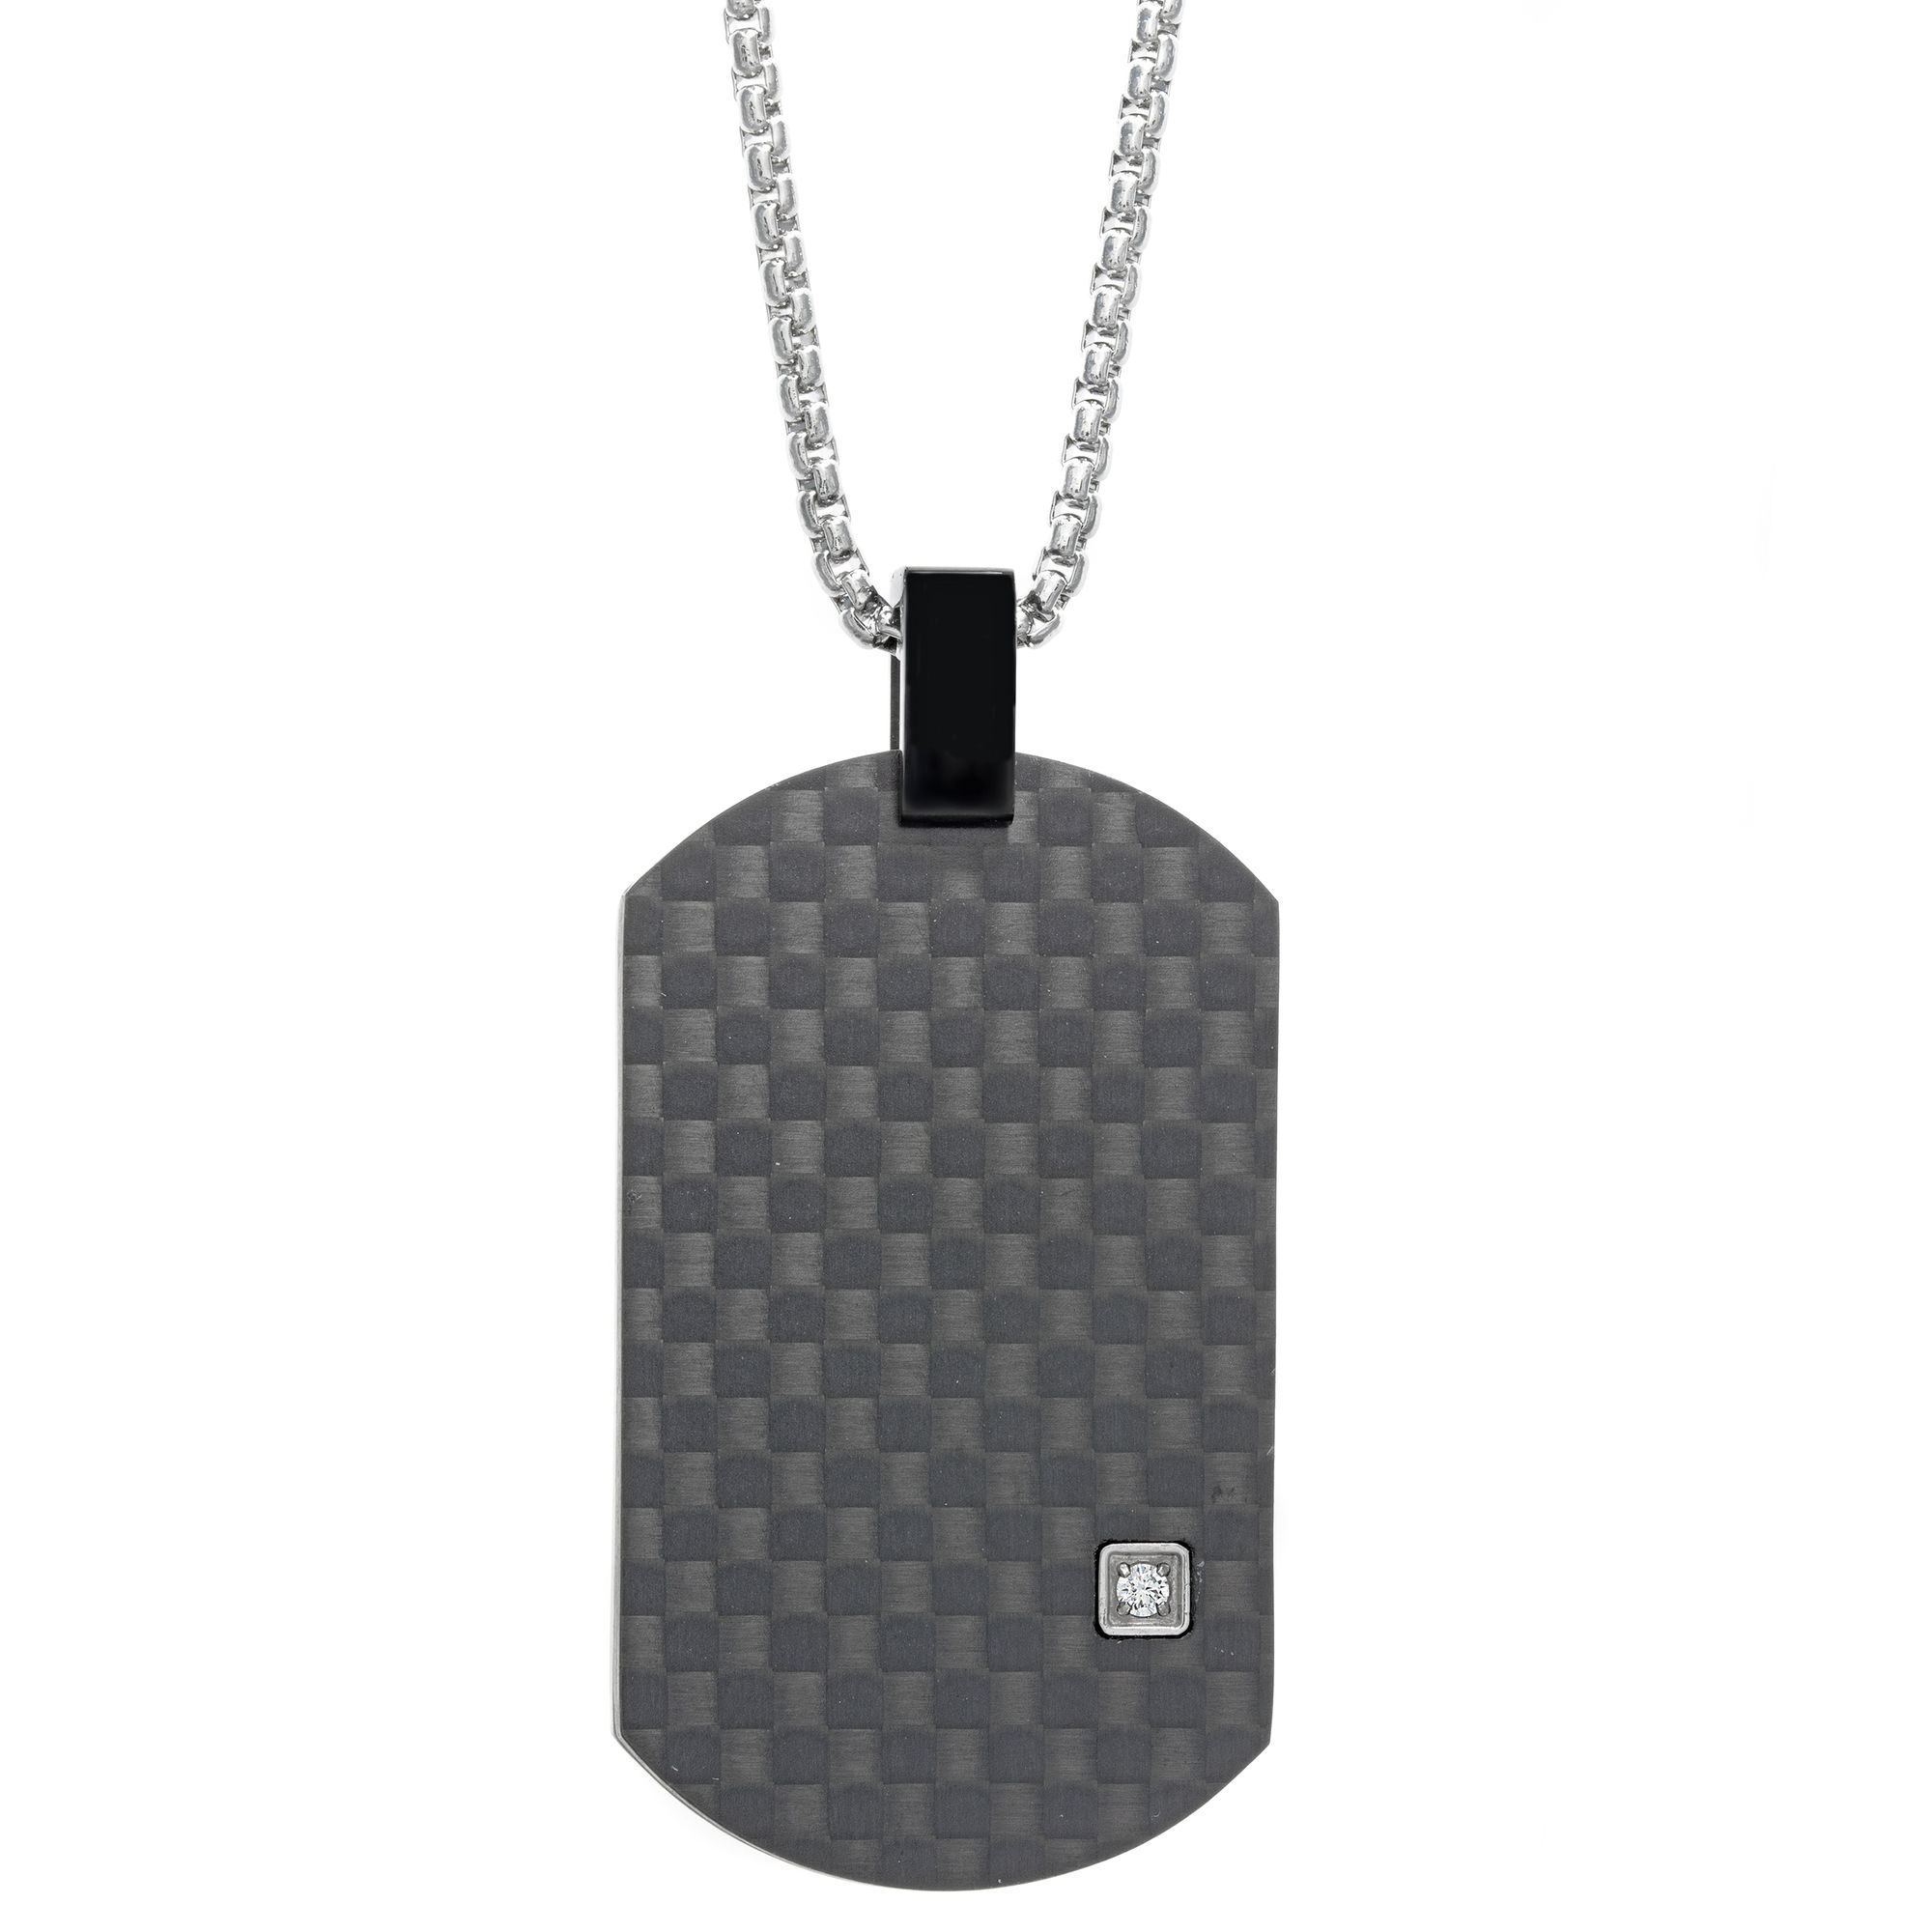 0.01 Round Cubic Zirconia Black Ion Plated Stainless Steel Carbon Fiber Dog Tag Pendant - 24 Inch Box Chain